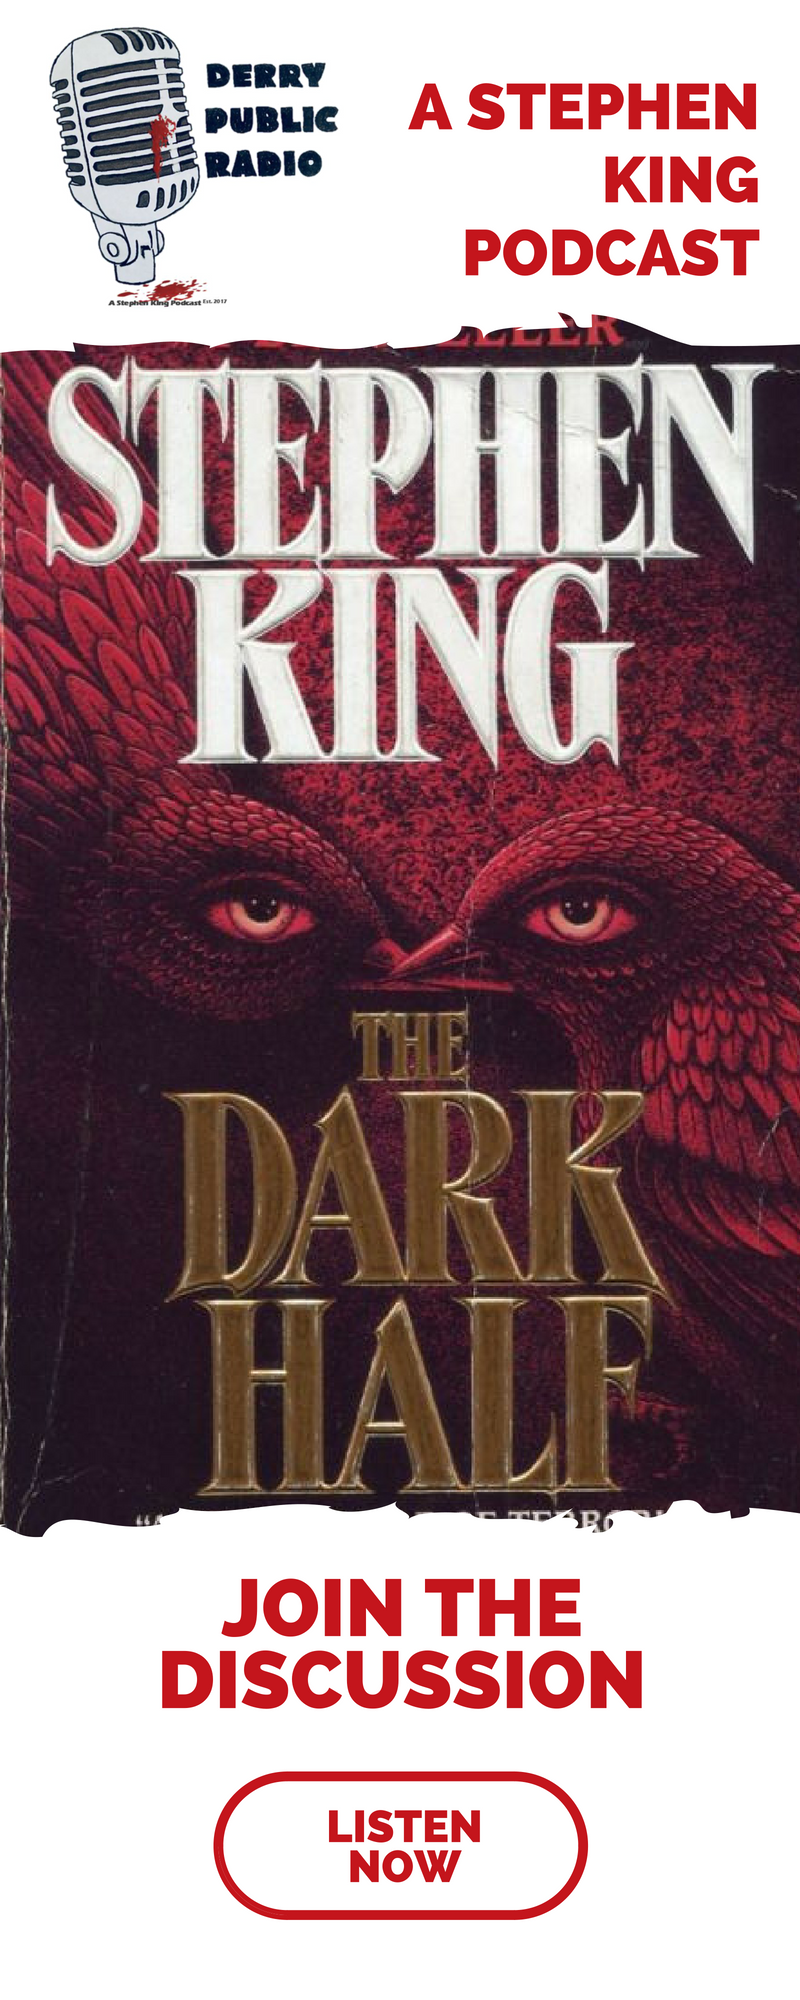 Derry Public Radio The Dark Half Podcast Stephen King